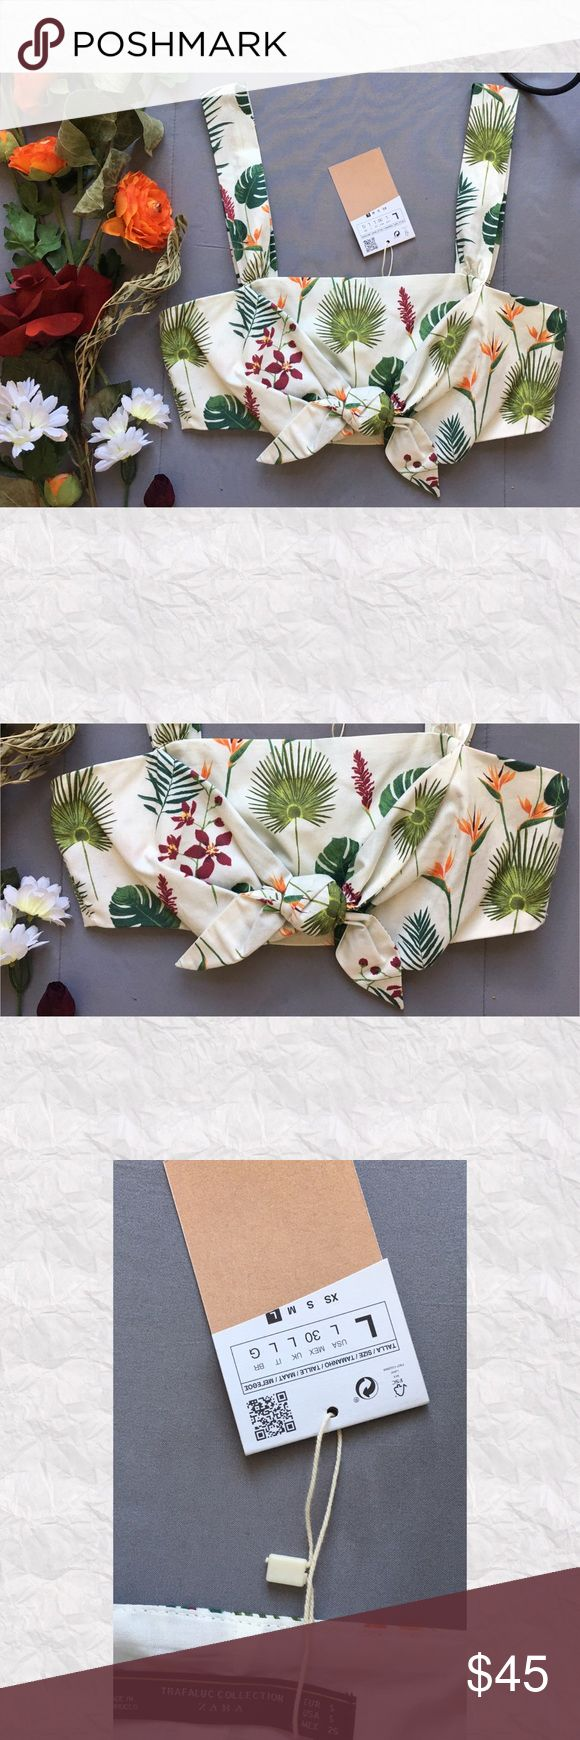 """Zara Trafaluc Tropical Cotton Crop Top *SALE IS FOR TOP ONLY!!   *Condition: NWT. Tags were cut to avoid returns *Ties at center busy *Zips on side *Shell: 100% Cotton *Lining: 100% Cotton *Care: Machine wash *Measurements are approx & taken lying flat *Bust: 31"""" *Shoulder to hem: 13.5"""" *Stored in non-smoking pet free home Zara Tops Crop Tops"""